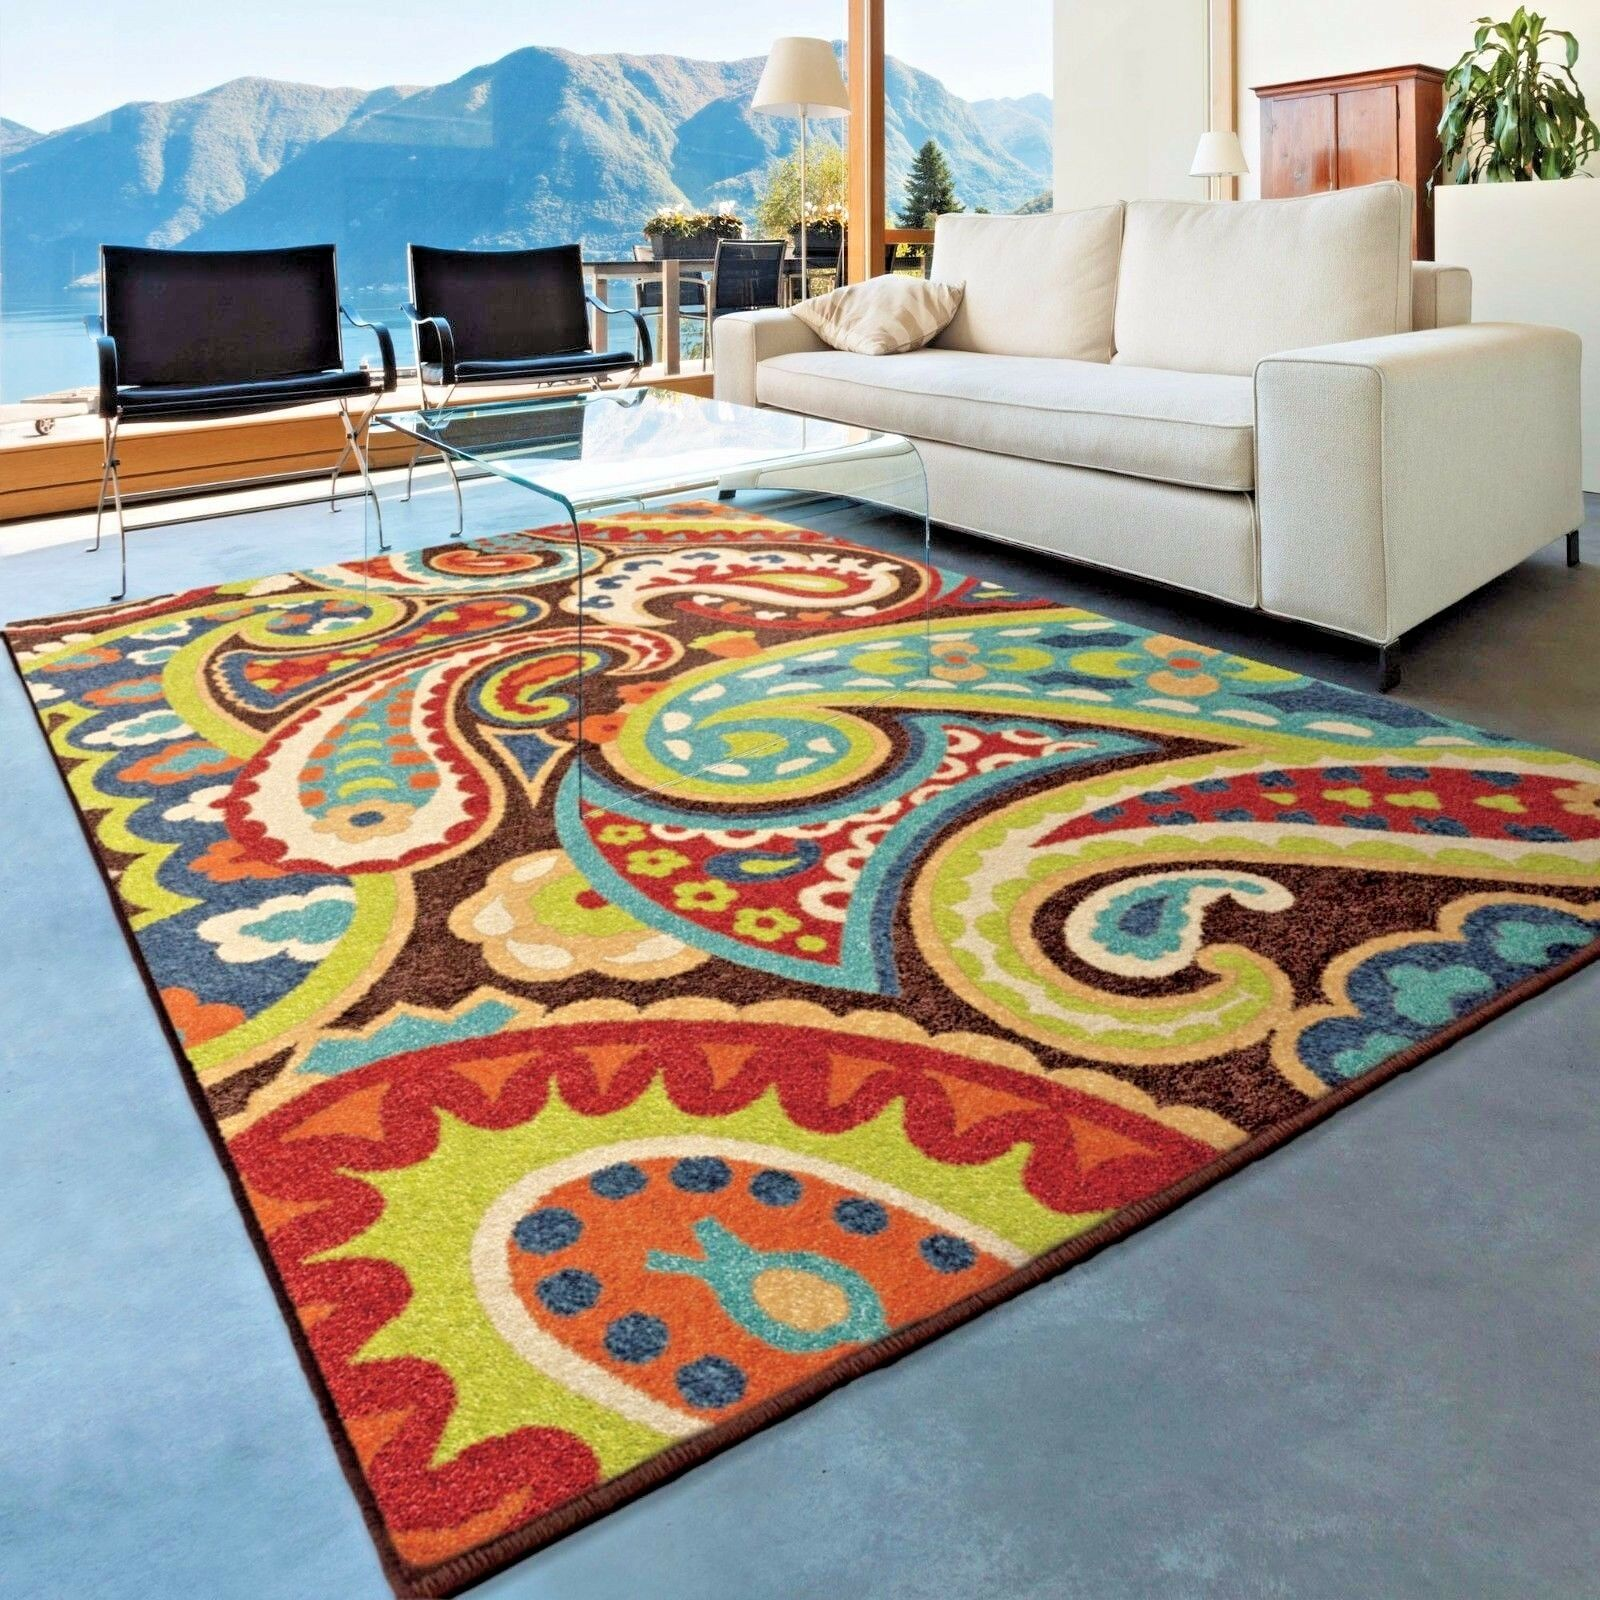 RUGS AREA RUGS 8x10 OUTDOOR RUGS INDOOR OUTDOOR CARPET ... - photo#11